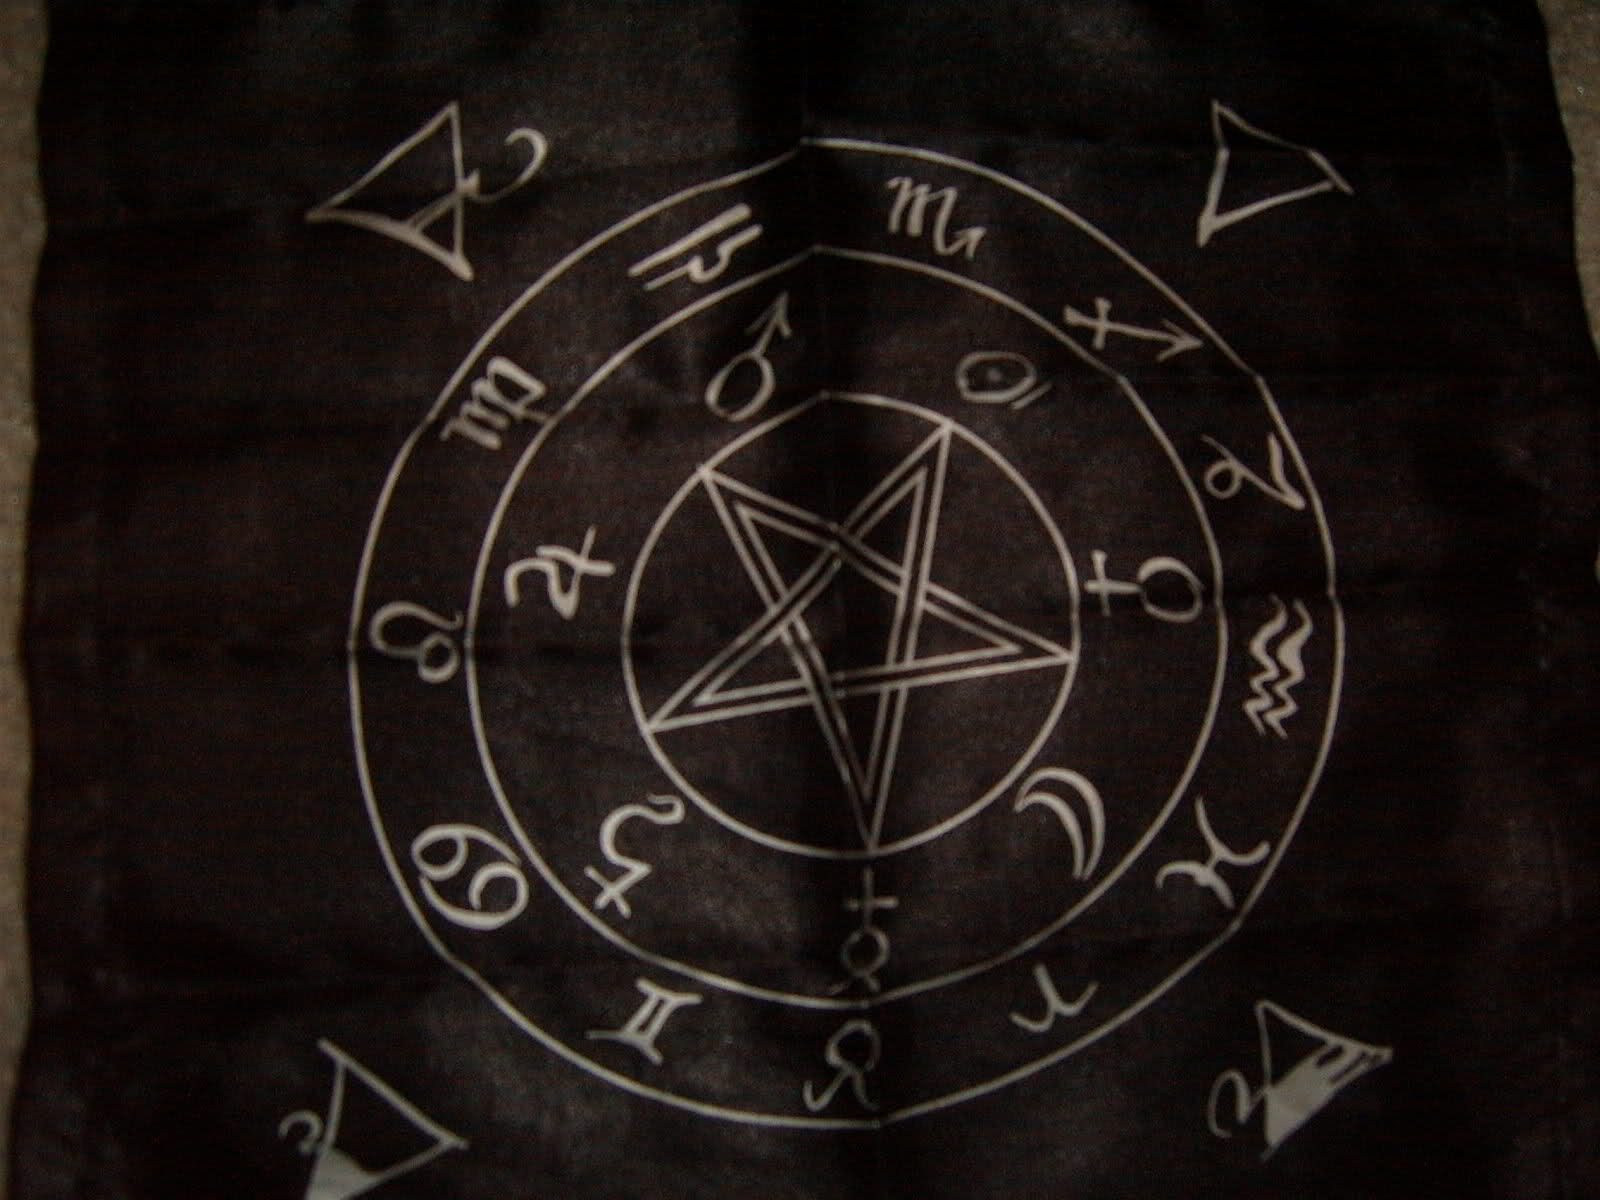 Devil signs and their meanings